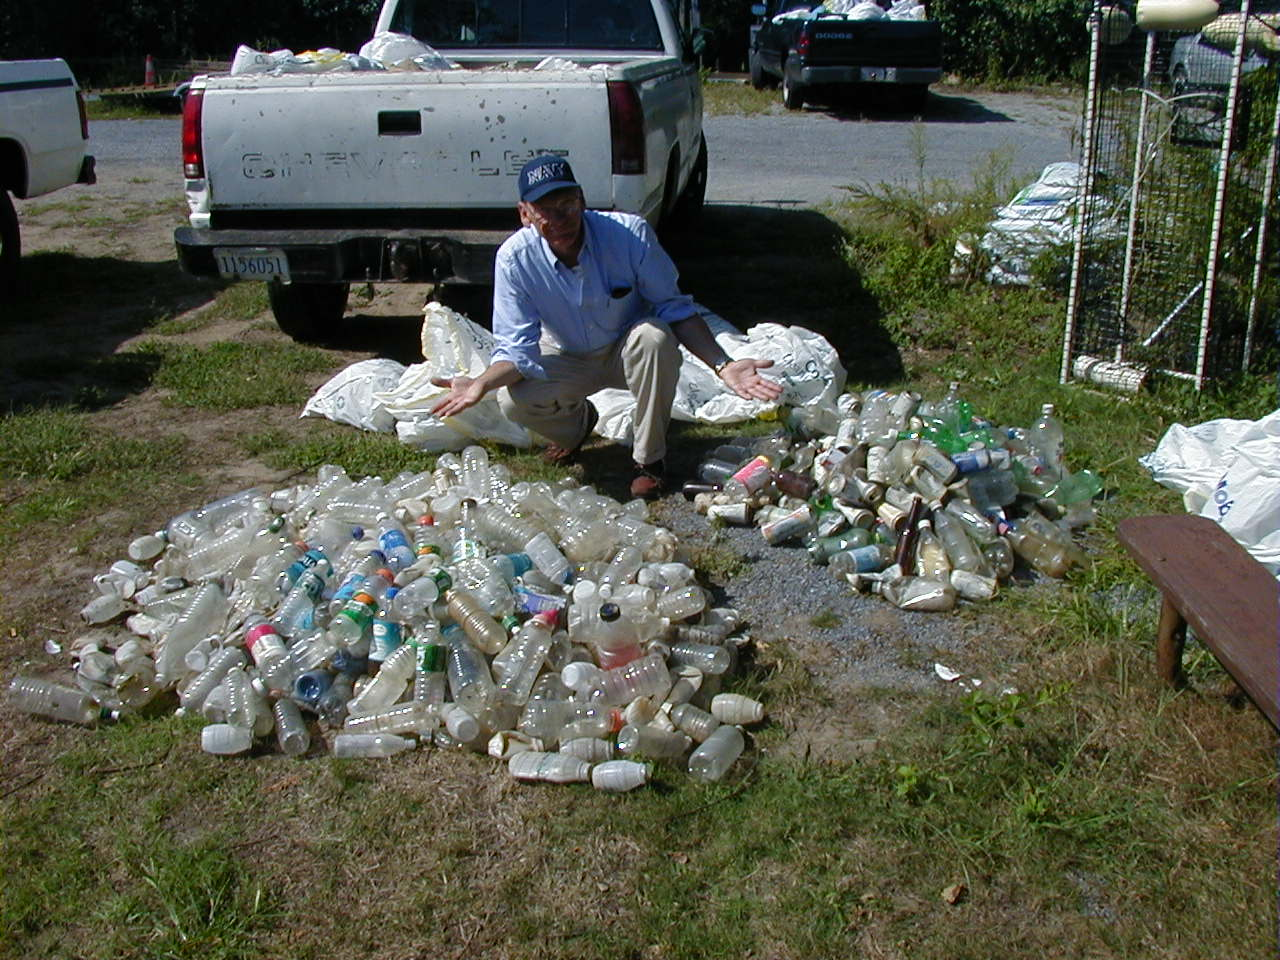 Towns in Massachusetts would save $7 million in cleanup work if the new Bottle bill passes.